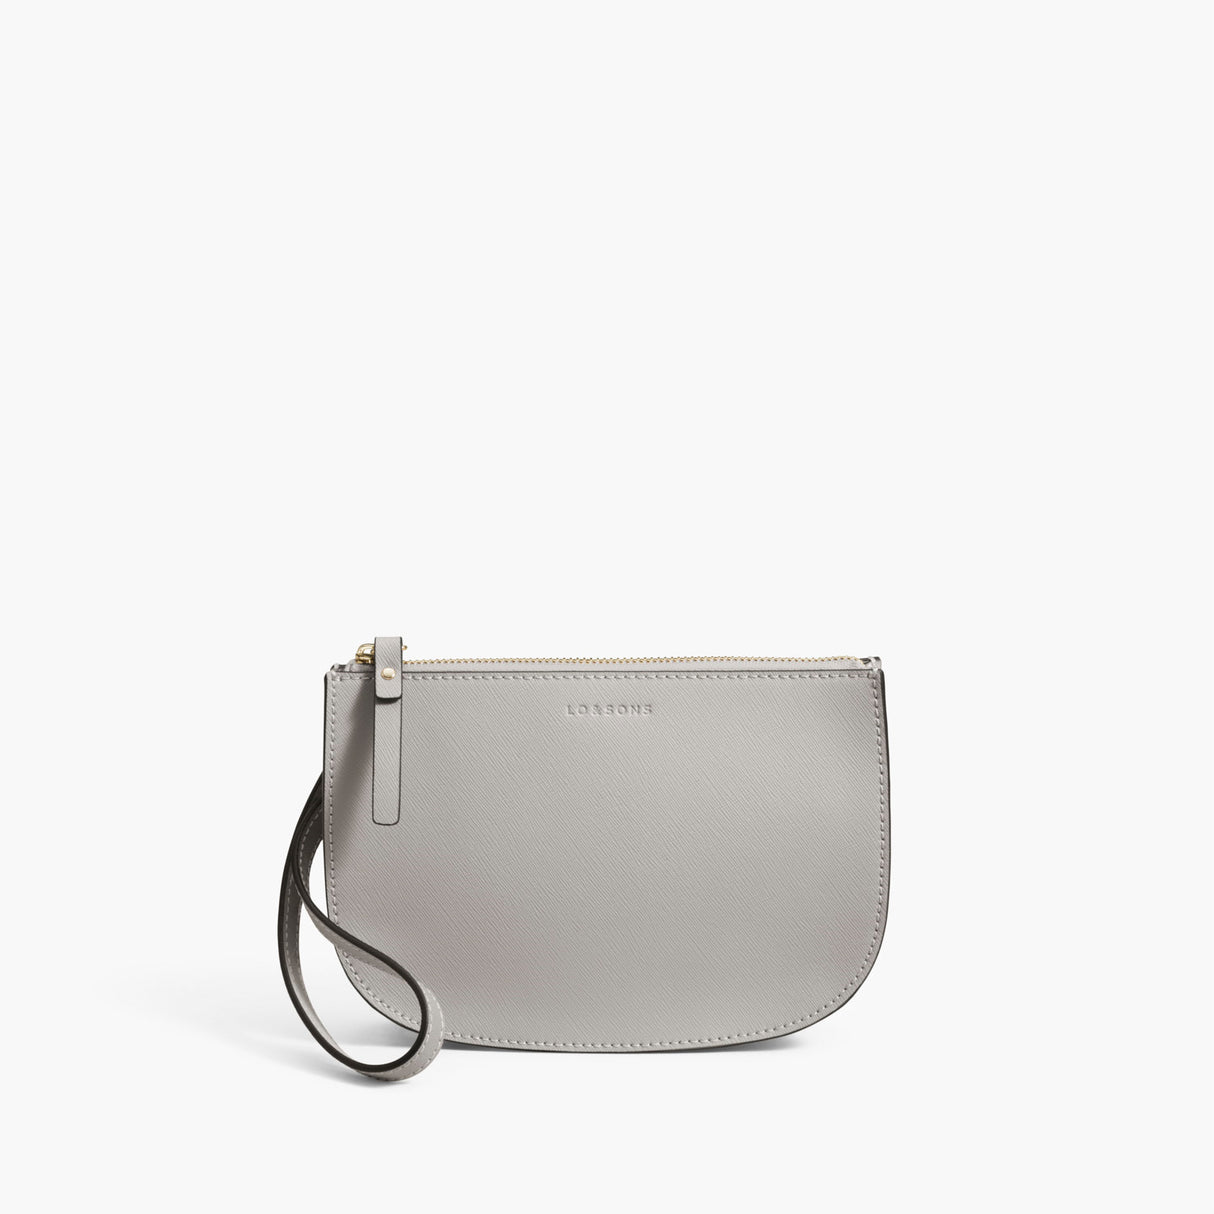 Front Wristlet - The Waverley 2 - Saffiano Leather - Light Grey / Gold / Grey - Crossbody - Lo & Sons